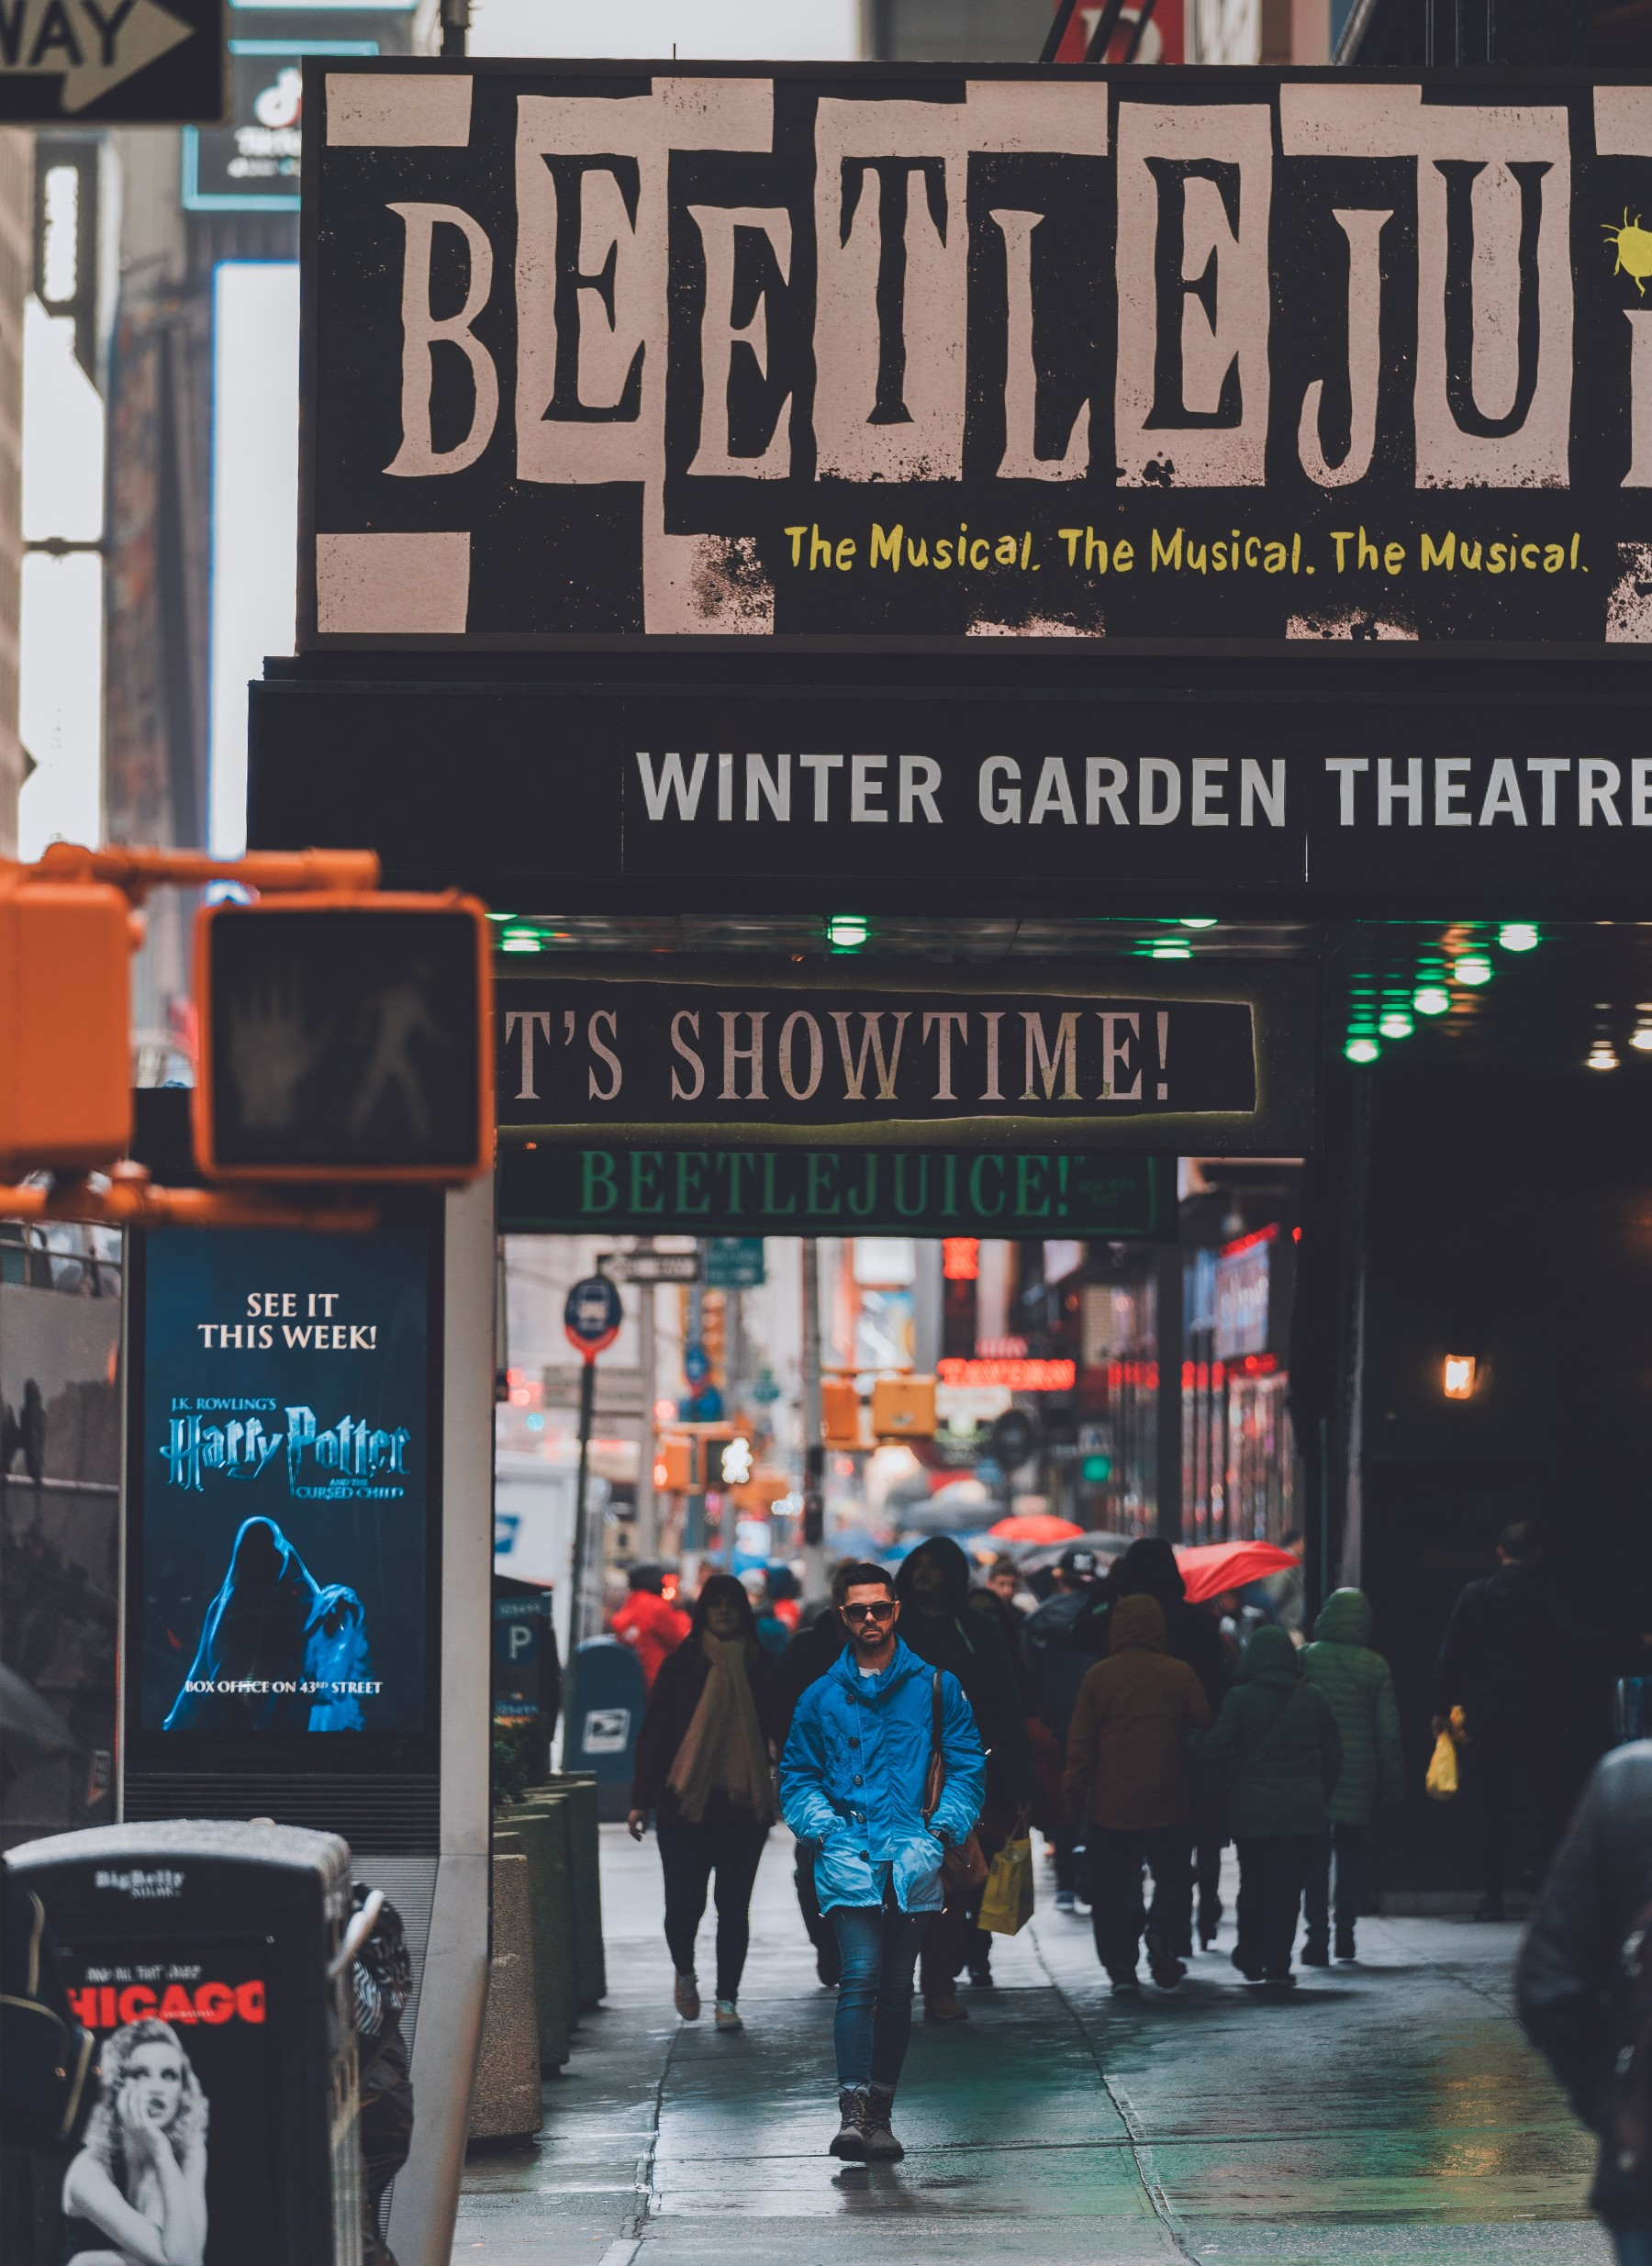 The Beetlejuice Marquee on the Winter Garden Theater in Times Square